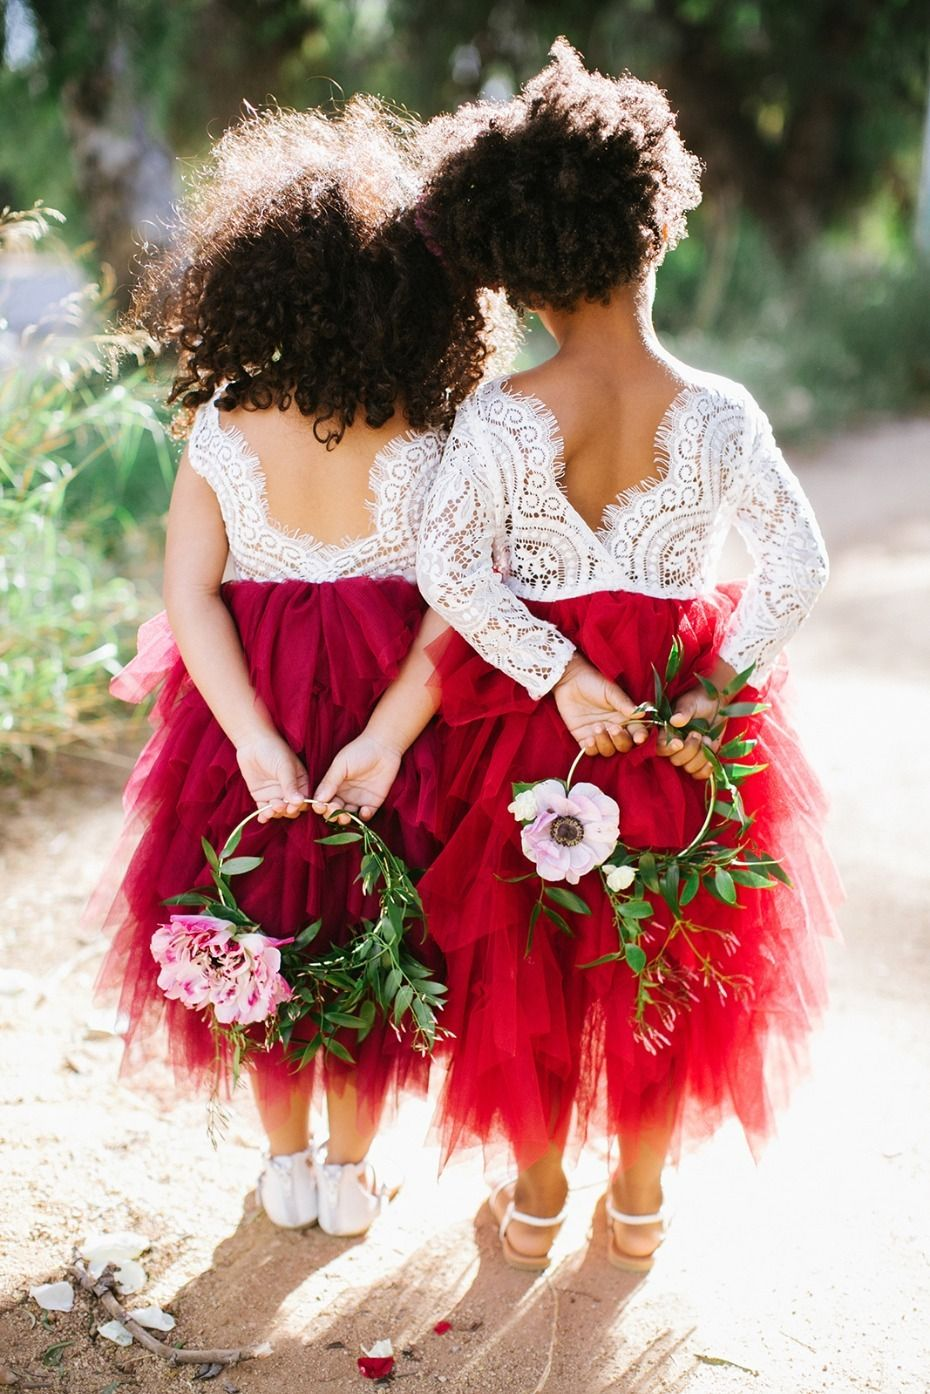 How To Make Your Own Hoop Bouquet Flower Girls Ring Bearers